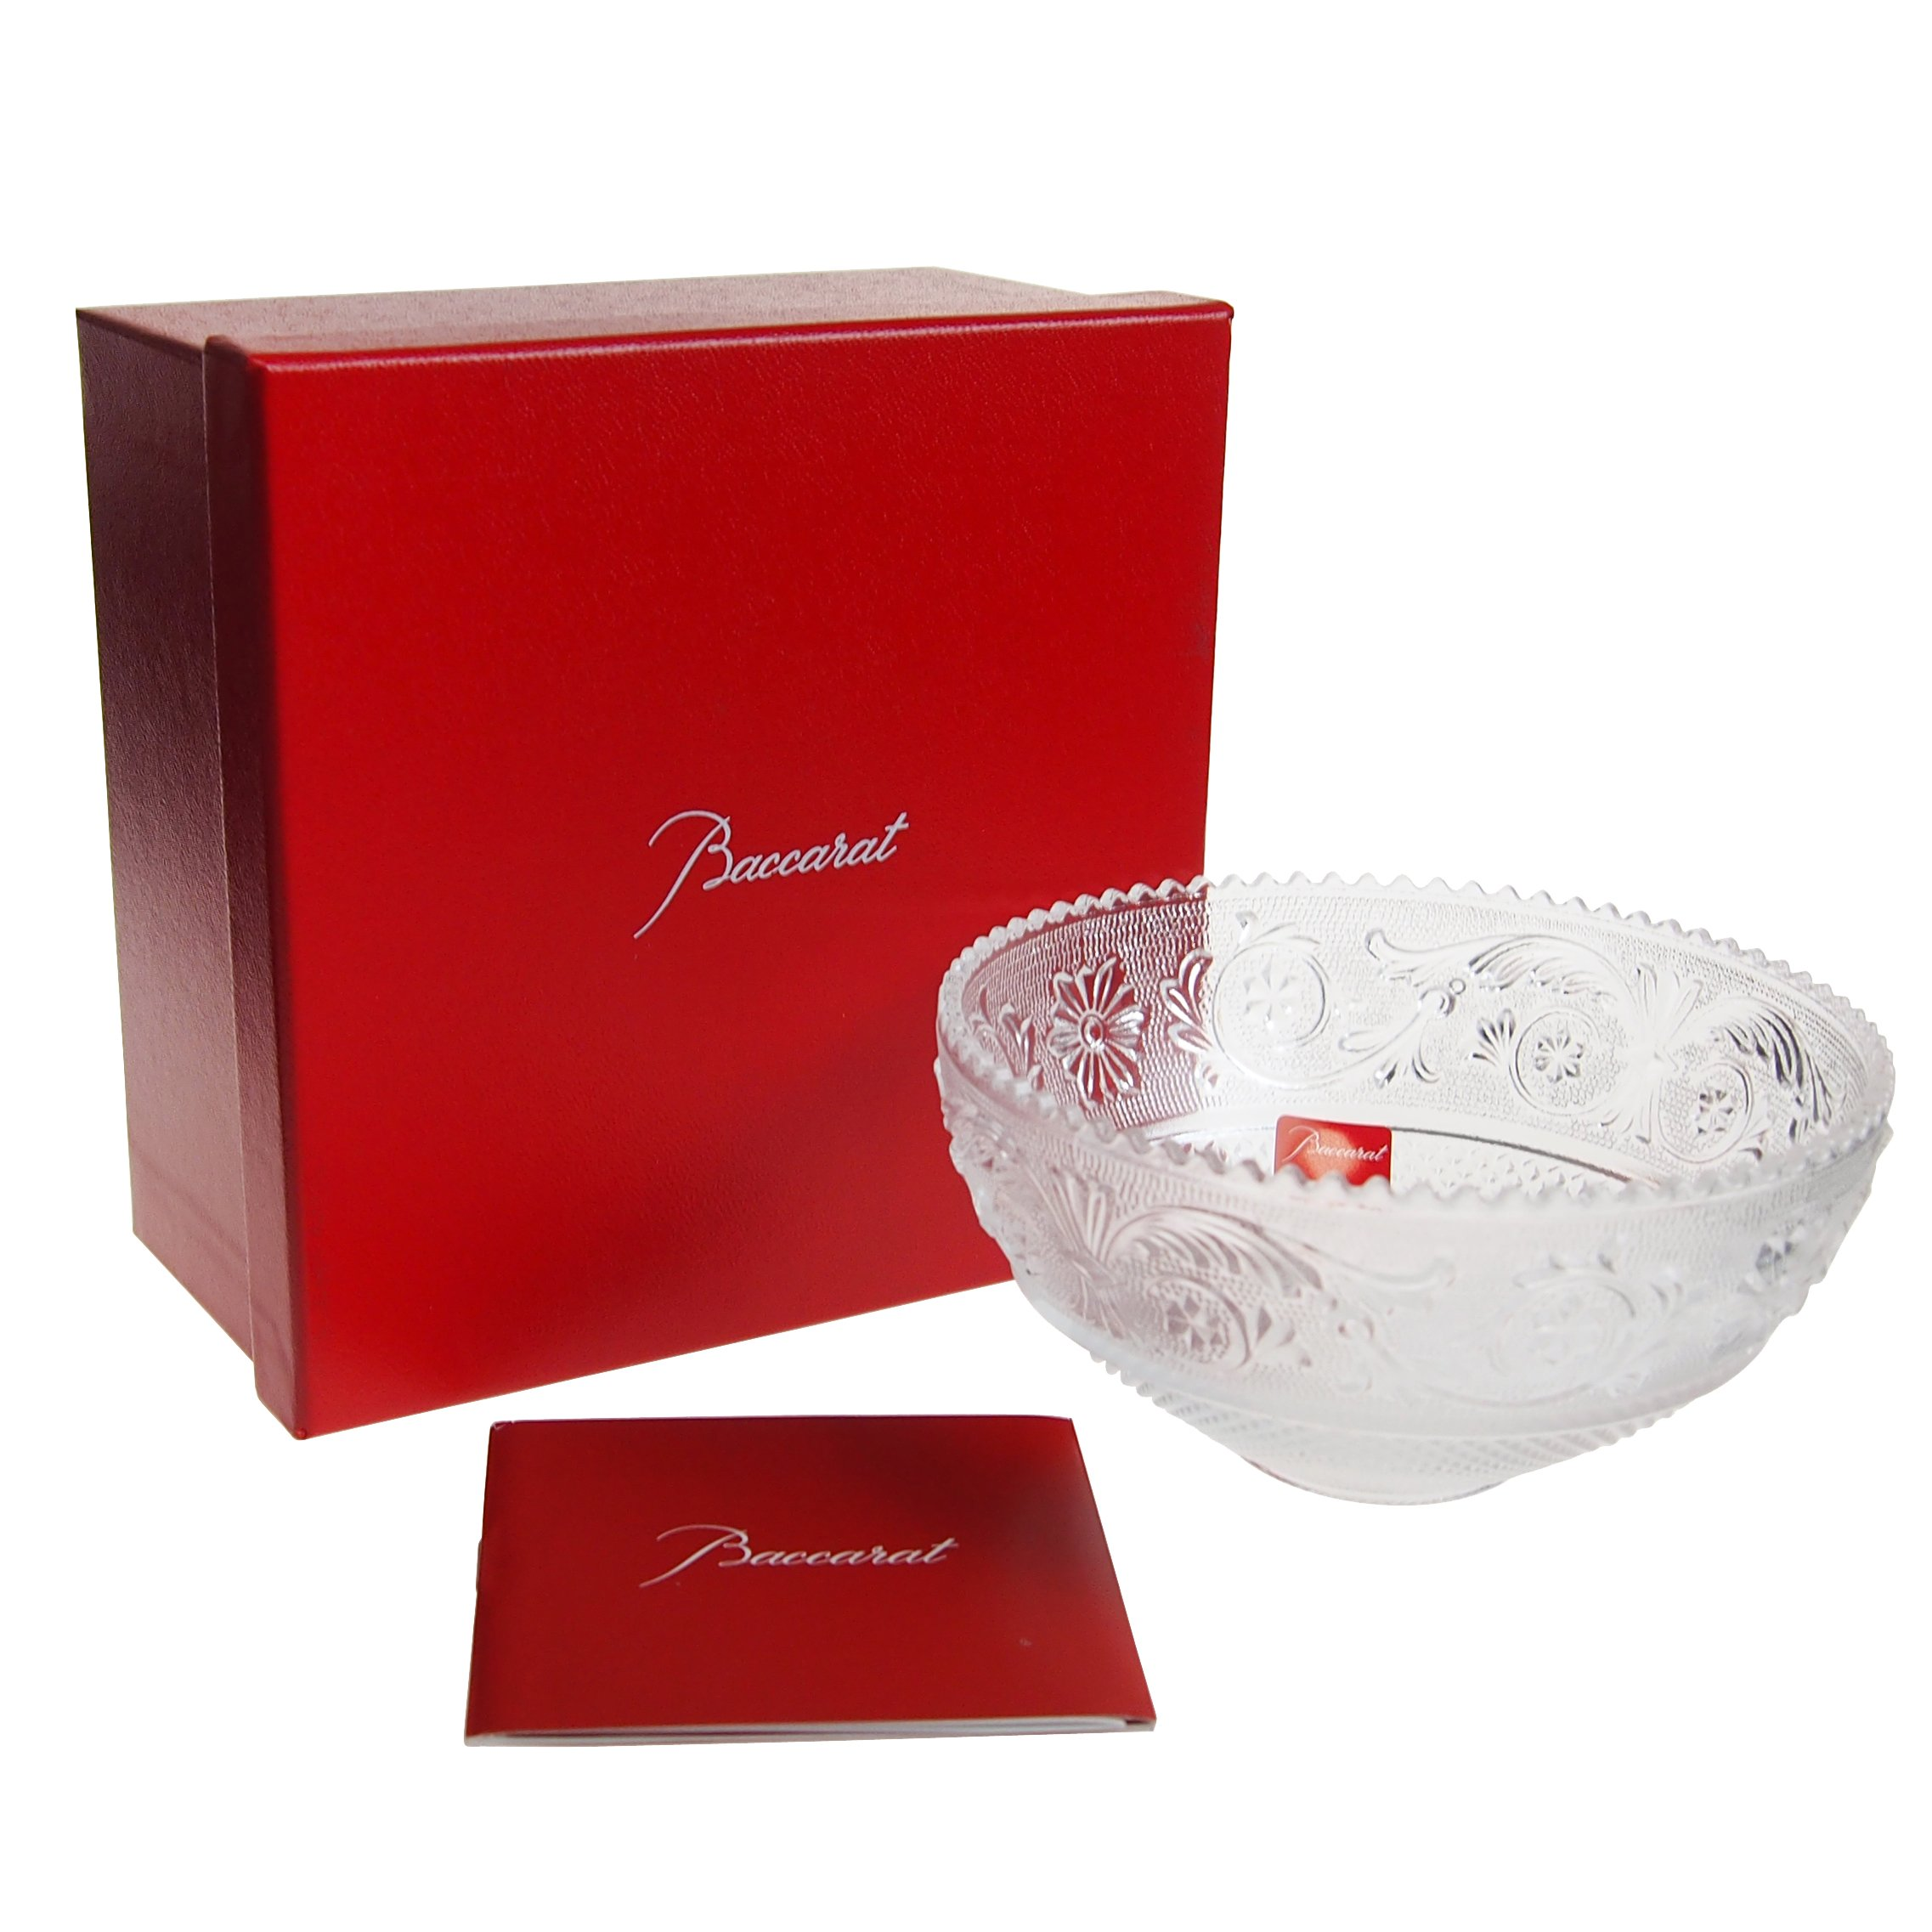 Baccarat Baccarat Arabesque Arabesque bowl dish 2103573 [ parallel import goods ] by BACCART ( Baccarat ) (Image #1)